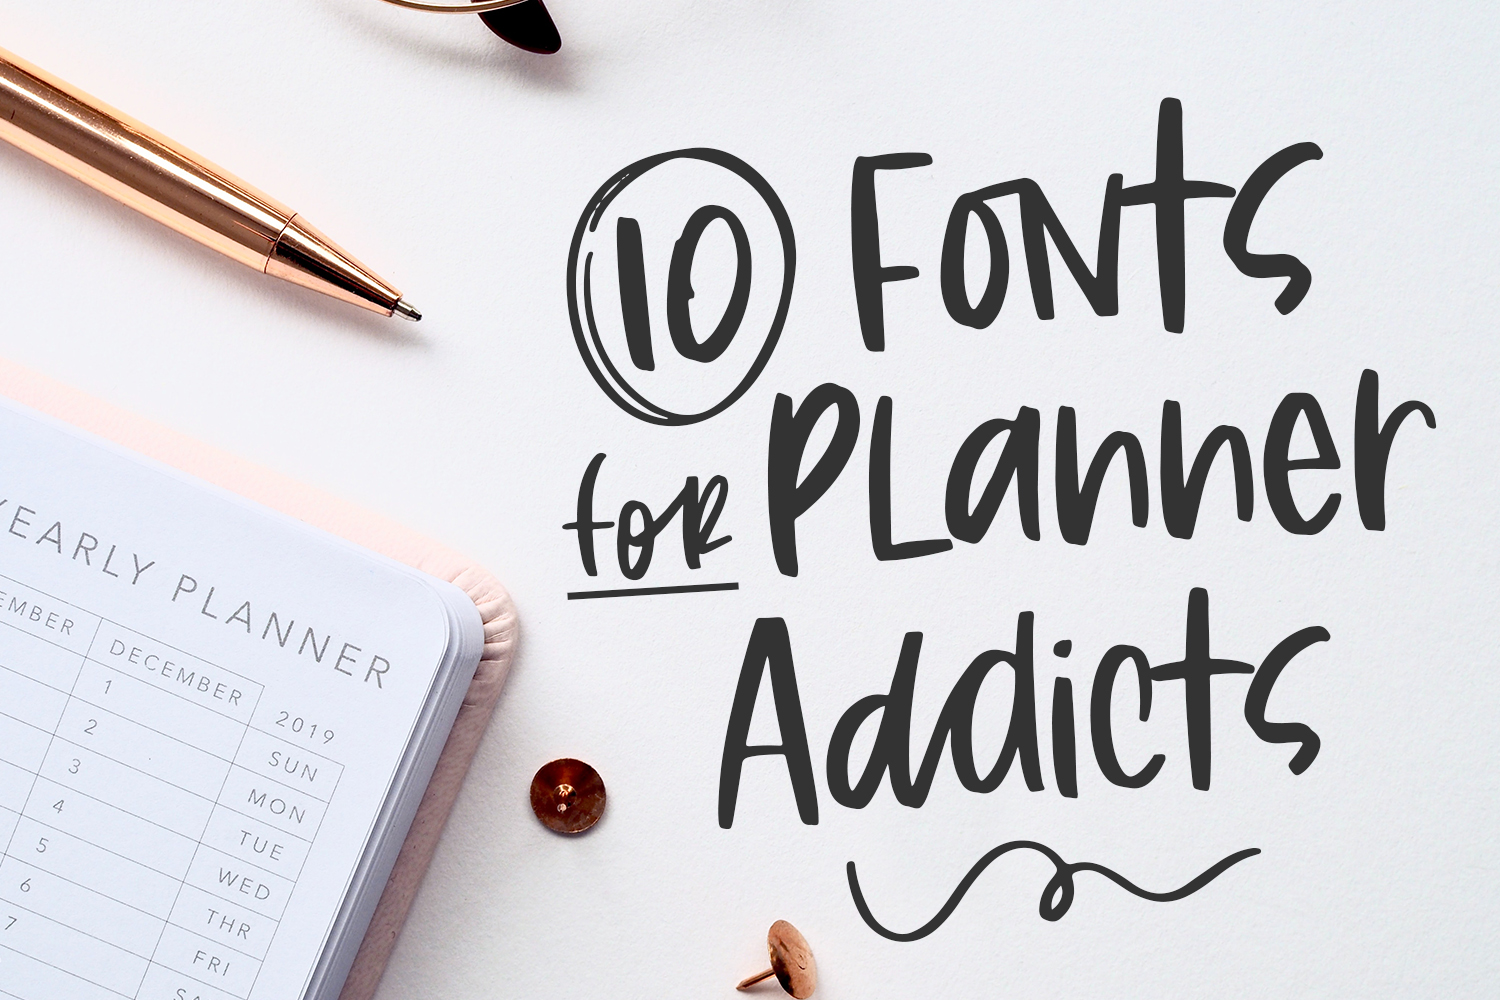 10 Fonts for Planner Addicts